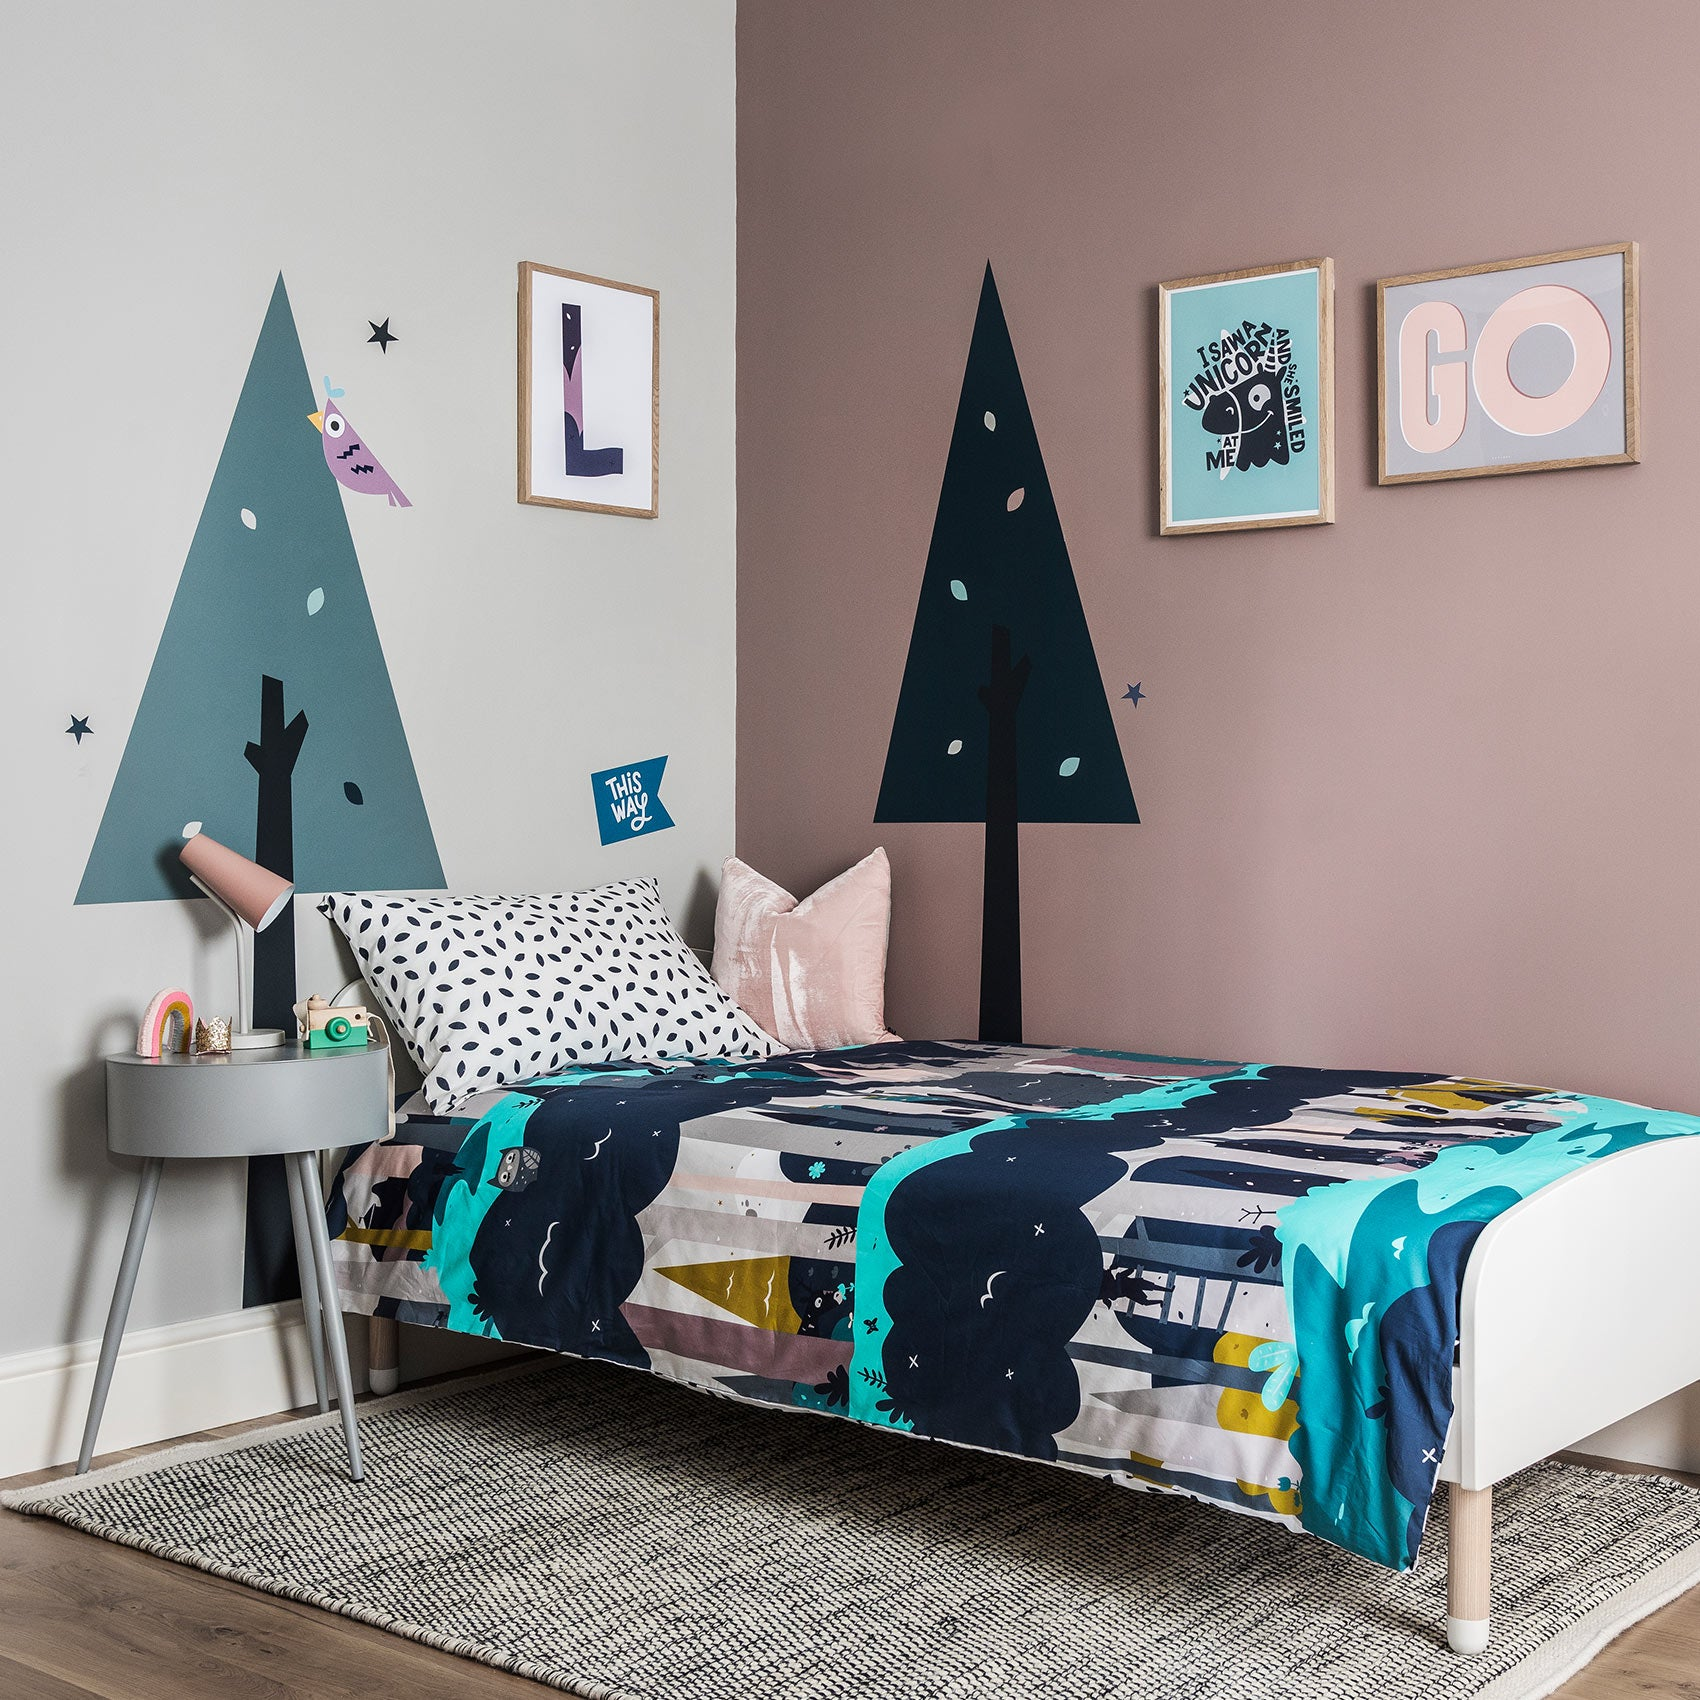 Enchanted Forest child's bedroom. Pink and Grey walls with wall stencil trees, poster prints line the walls with Enchanted Forest bedding made up on the bed.